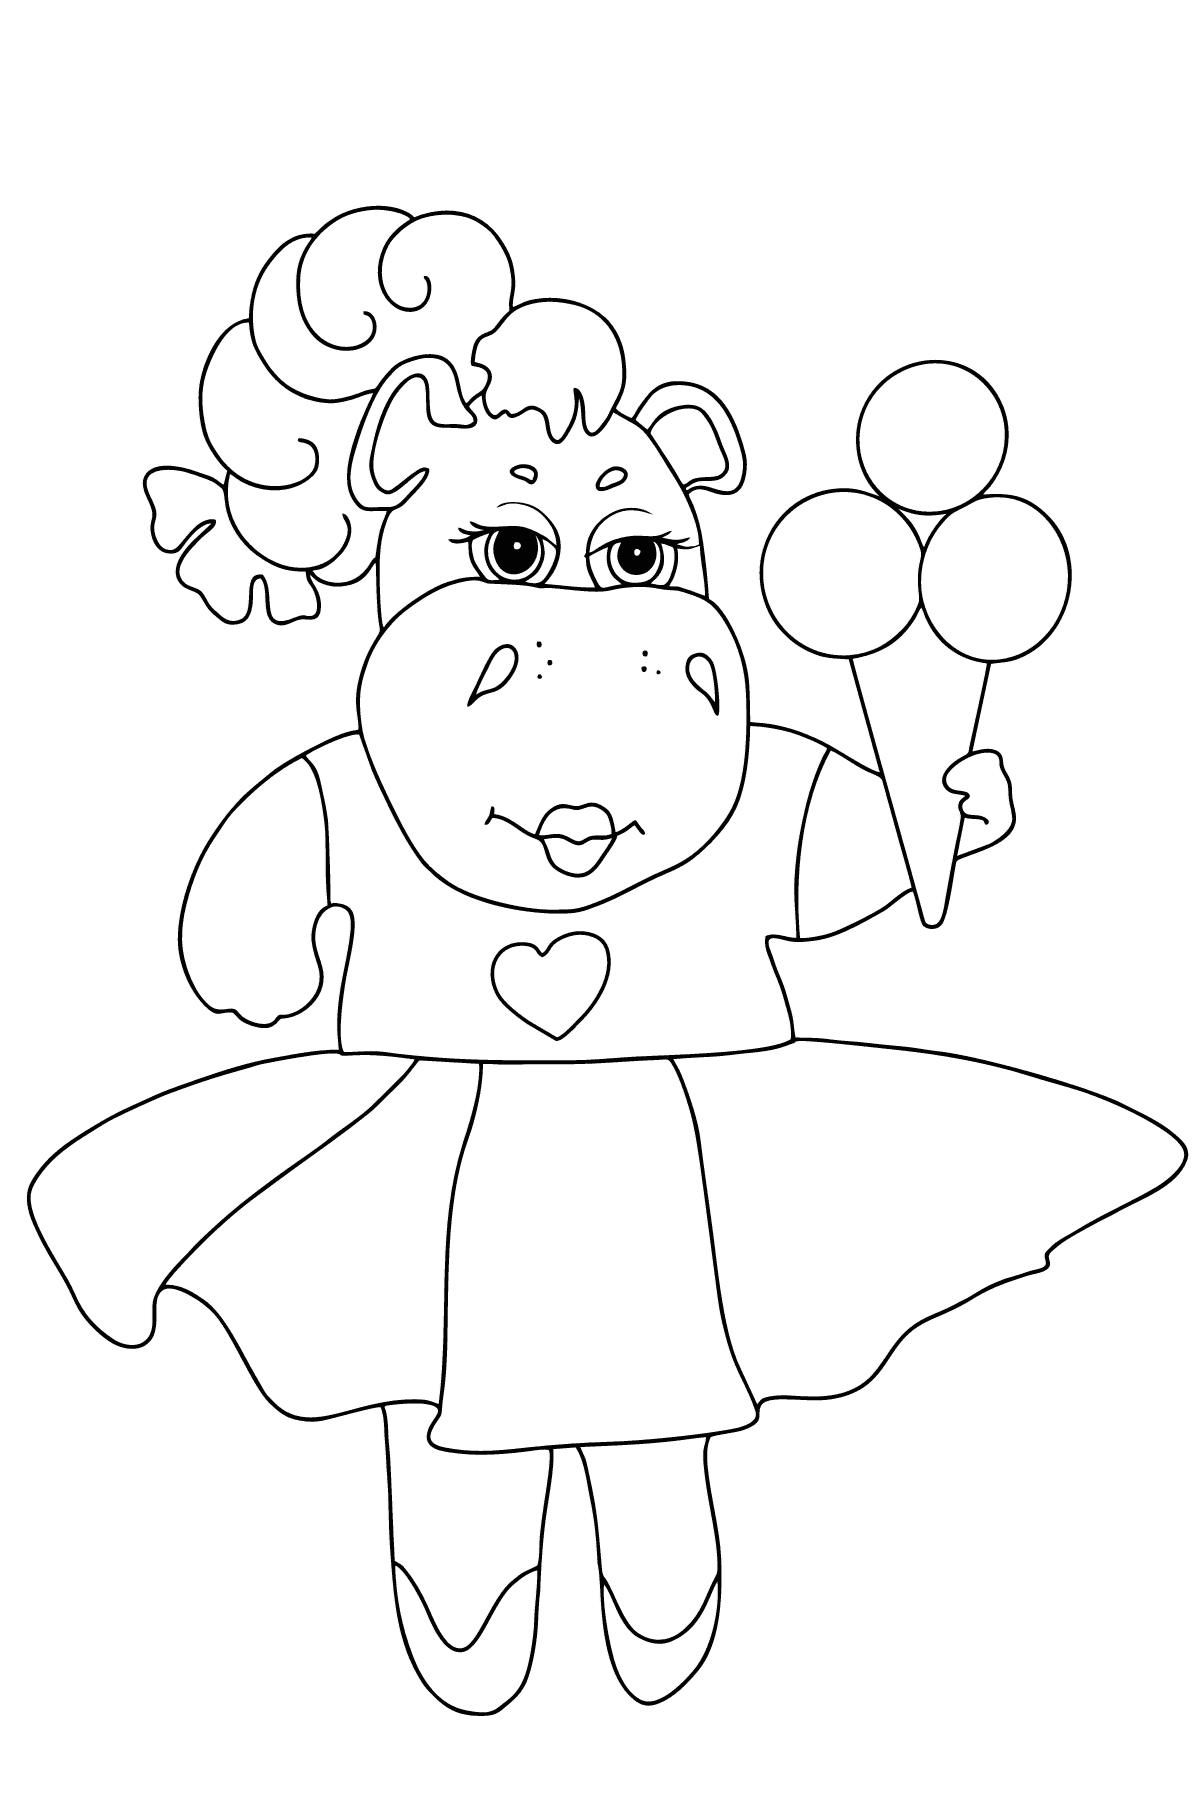 A Hippo in a Fancy Dress is Eating Ice Cream for Kids